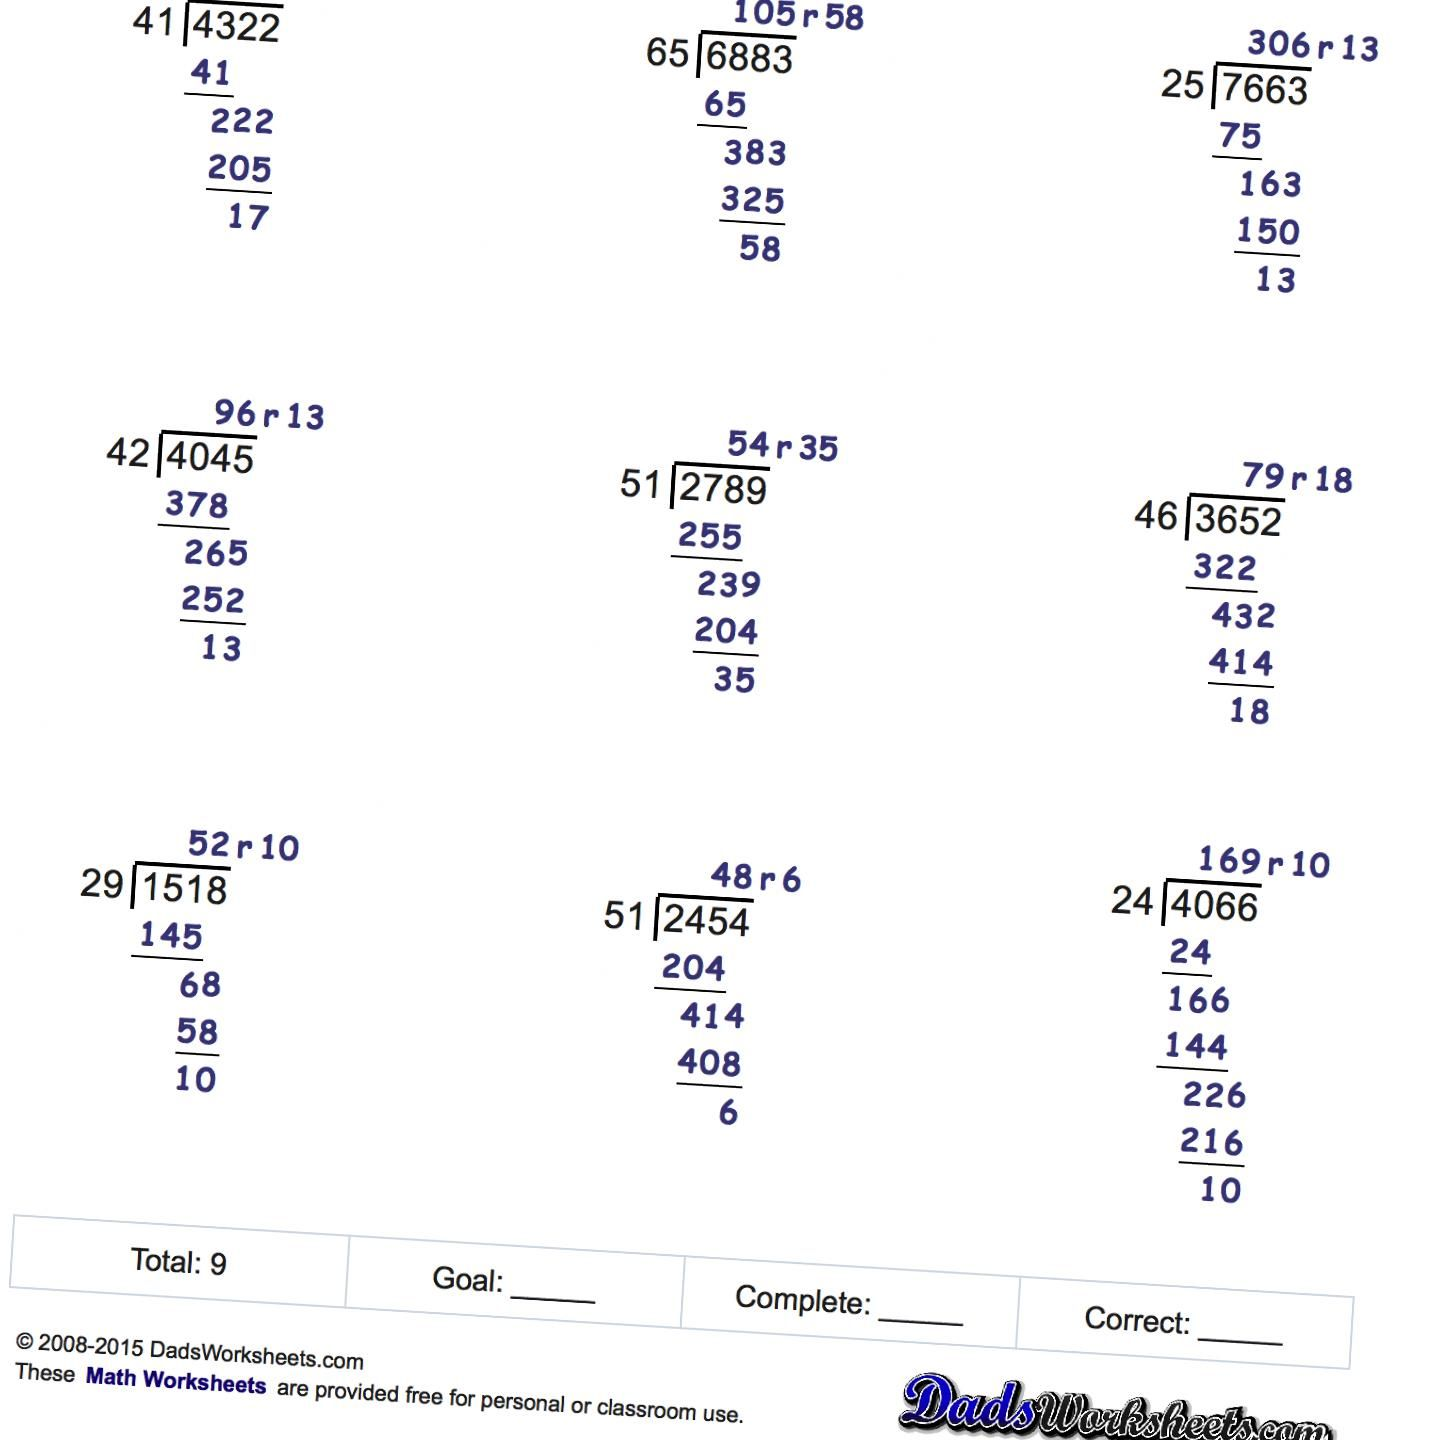 worksheet Long Division Problems free printable long division worksheets with multiple digit divisors and without remainders